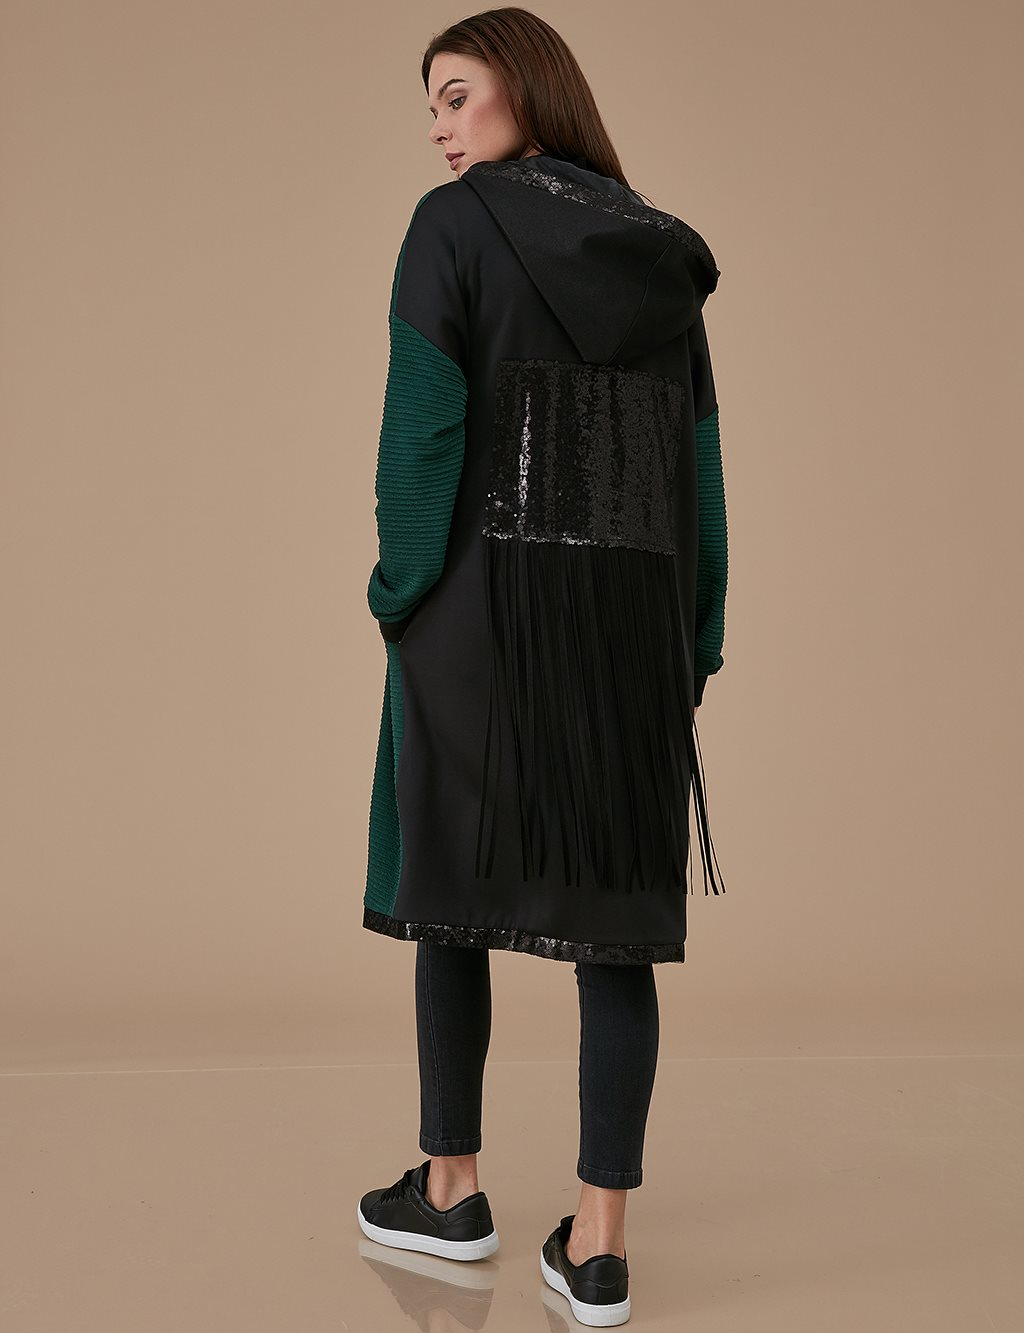 Coat With Sequin A9 25015 Green